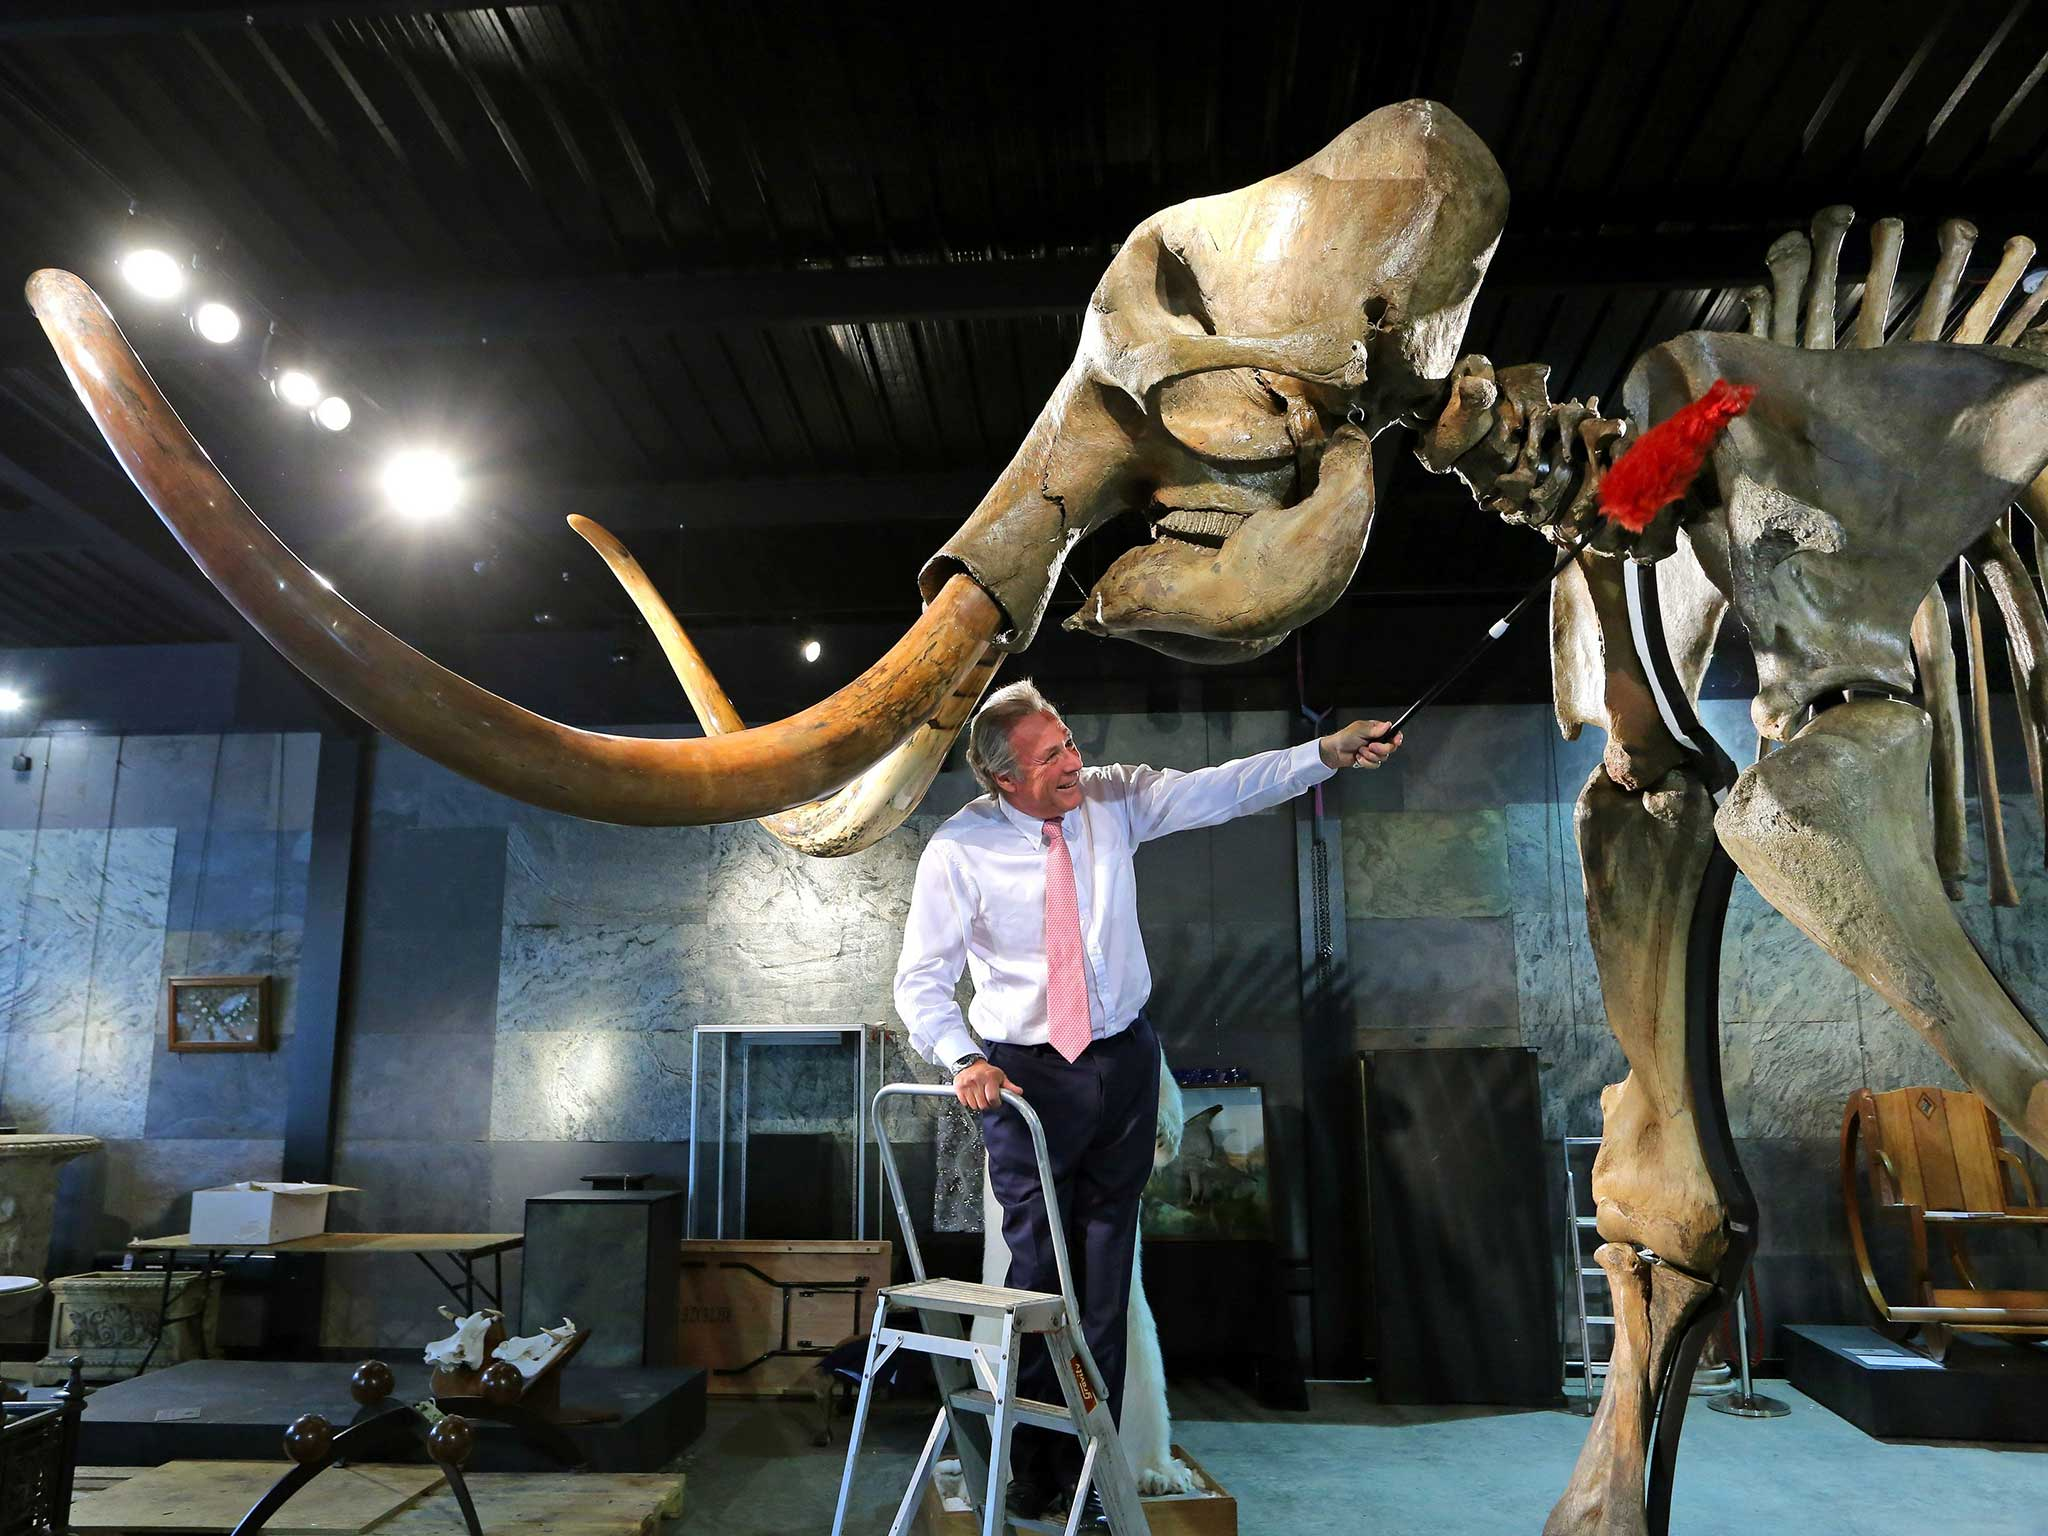 For sale: One woolly mammoth skeleton, intact | The Independent